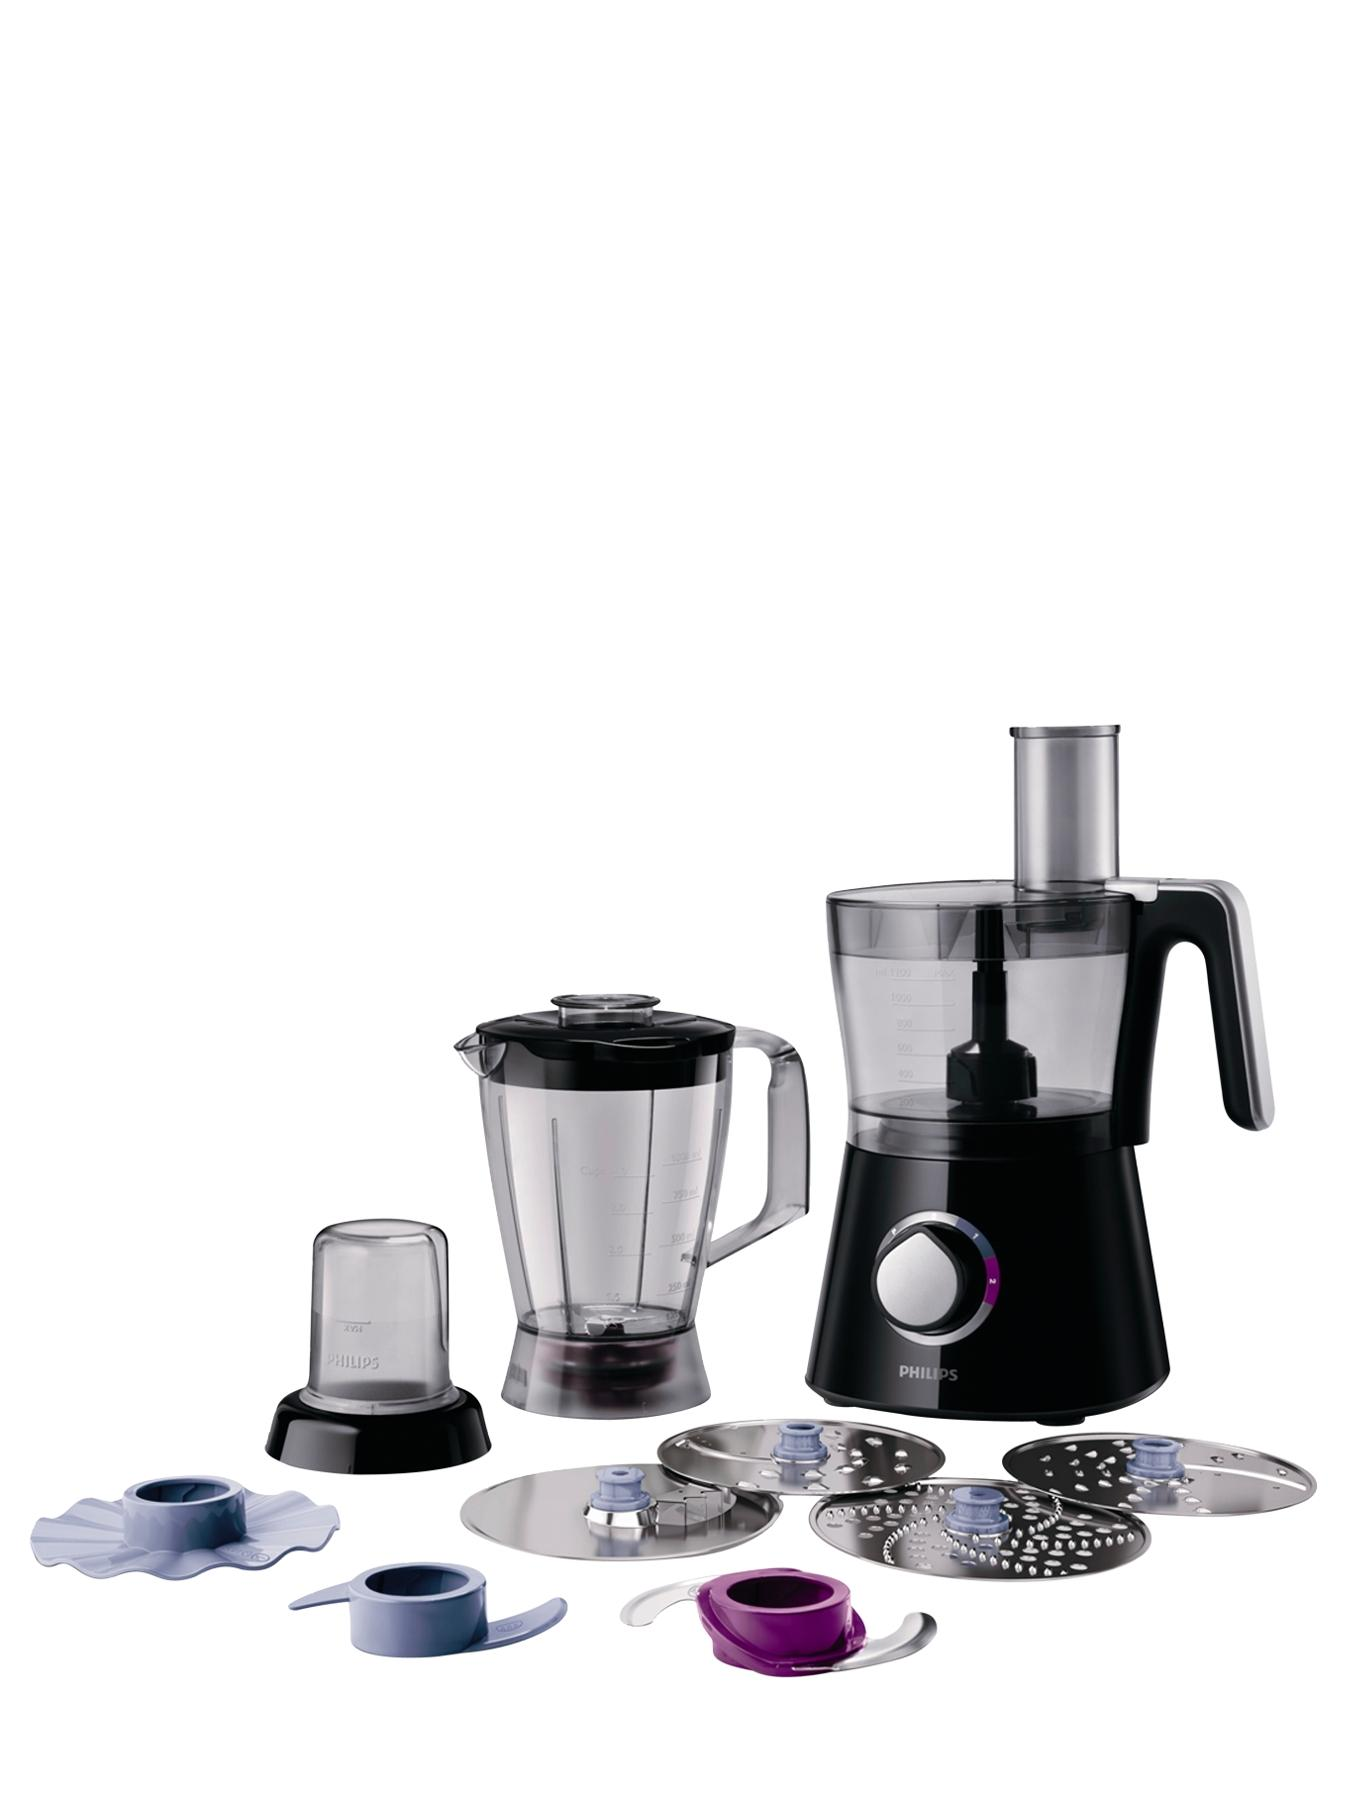 Philips HR7762 Viva Collection Food Processor - Black